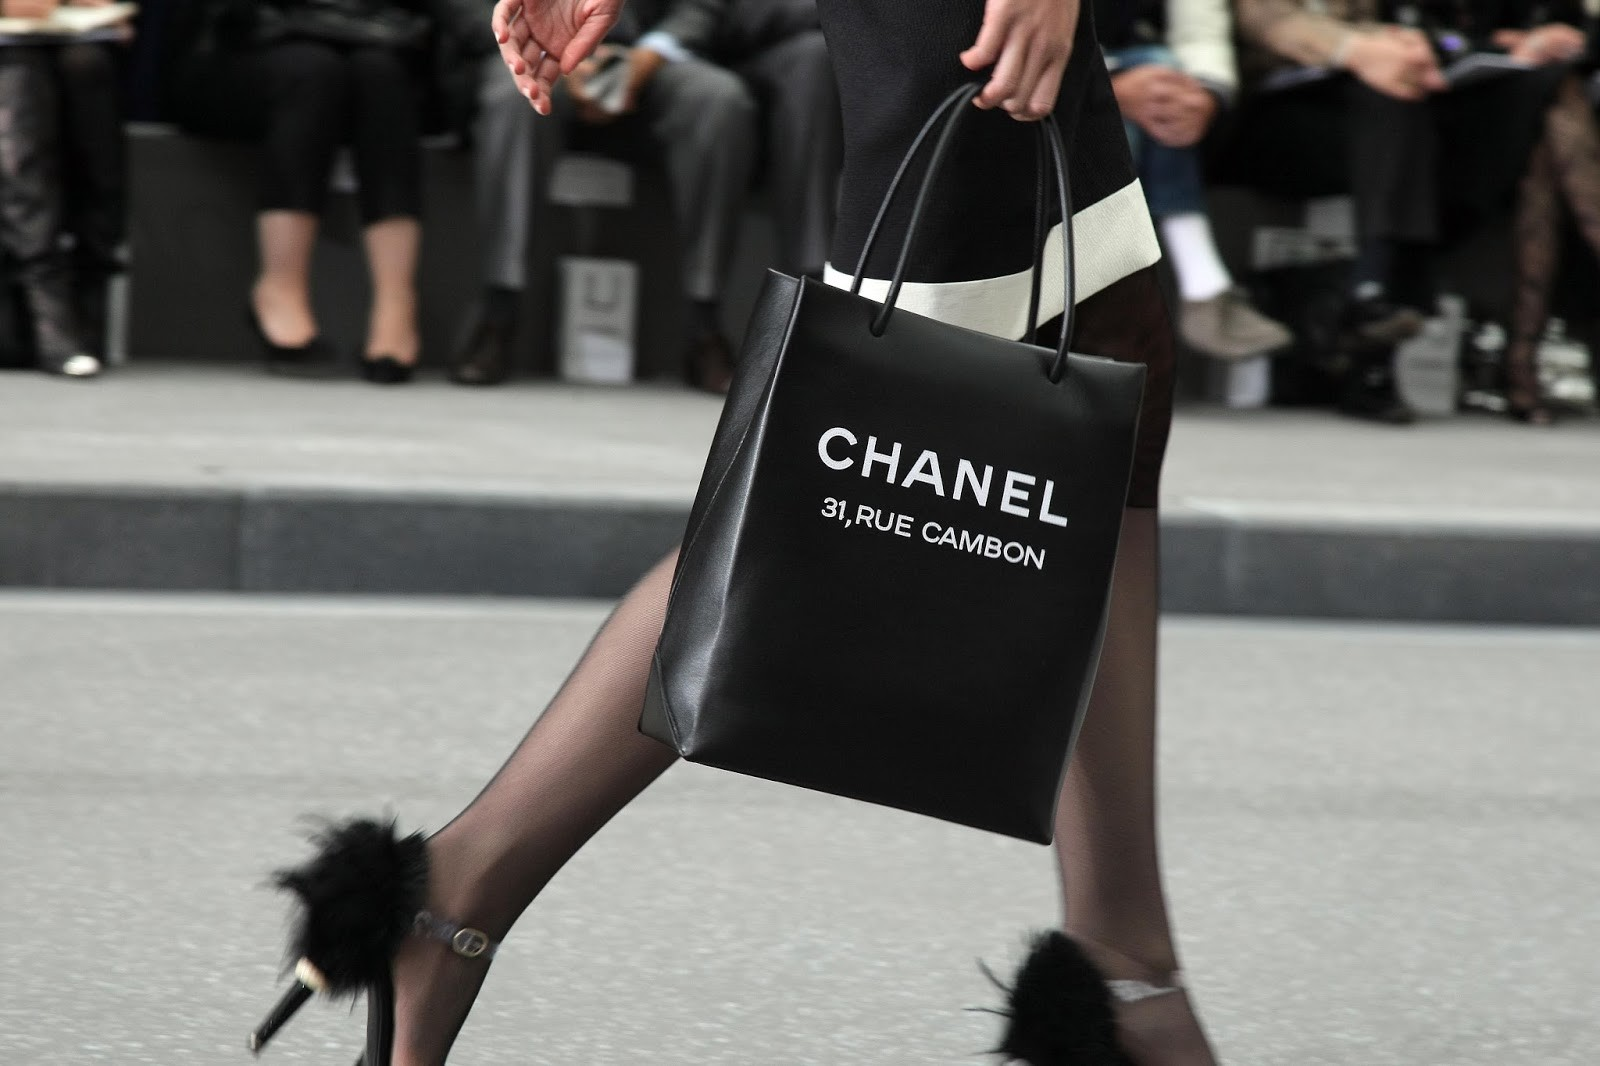 chanel shopping best citites shoppping world